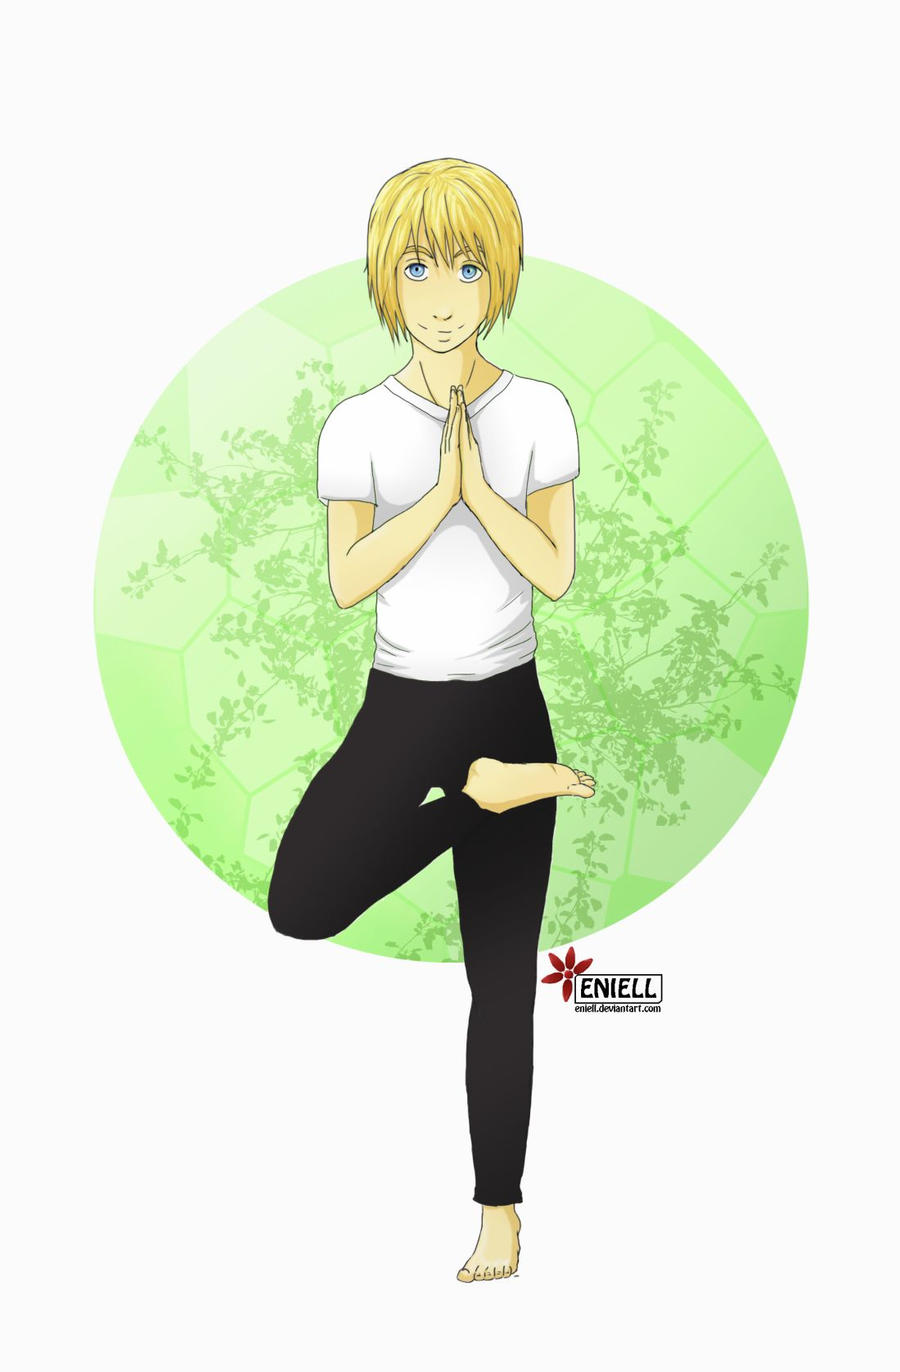 The Tree - Armin by Eniell